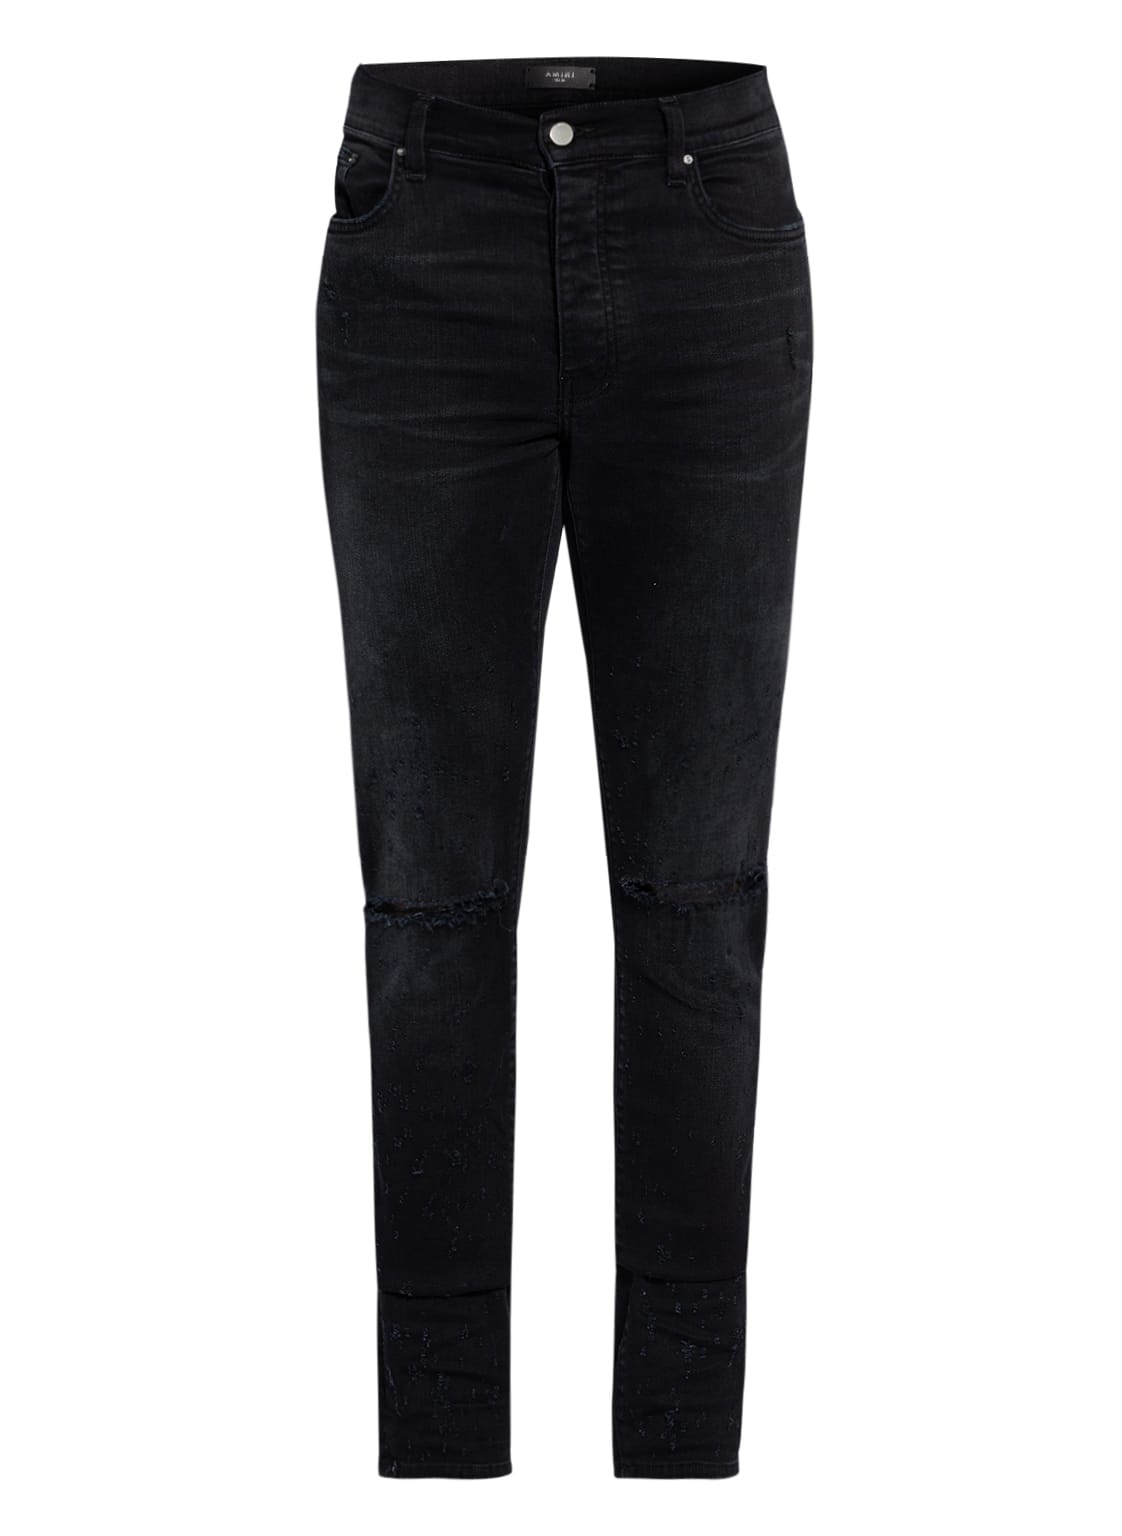 Image of Amiri Destroyed Jeans Slim Fit schwarz